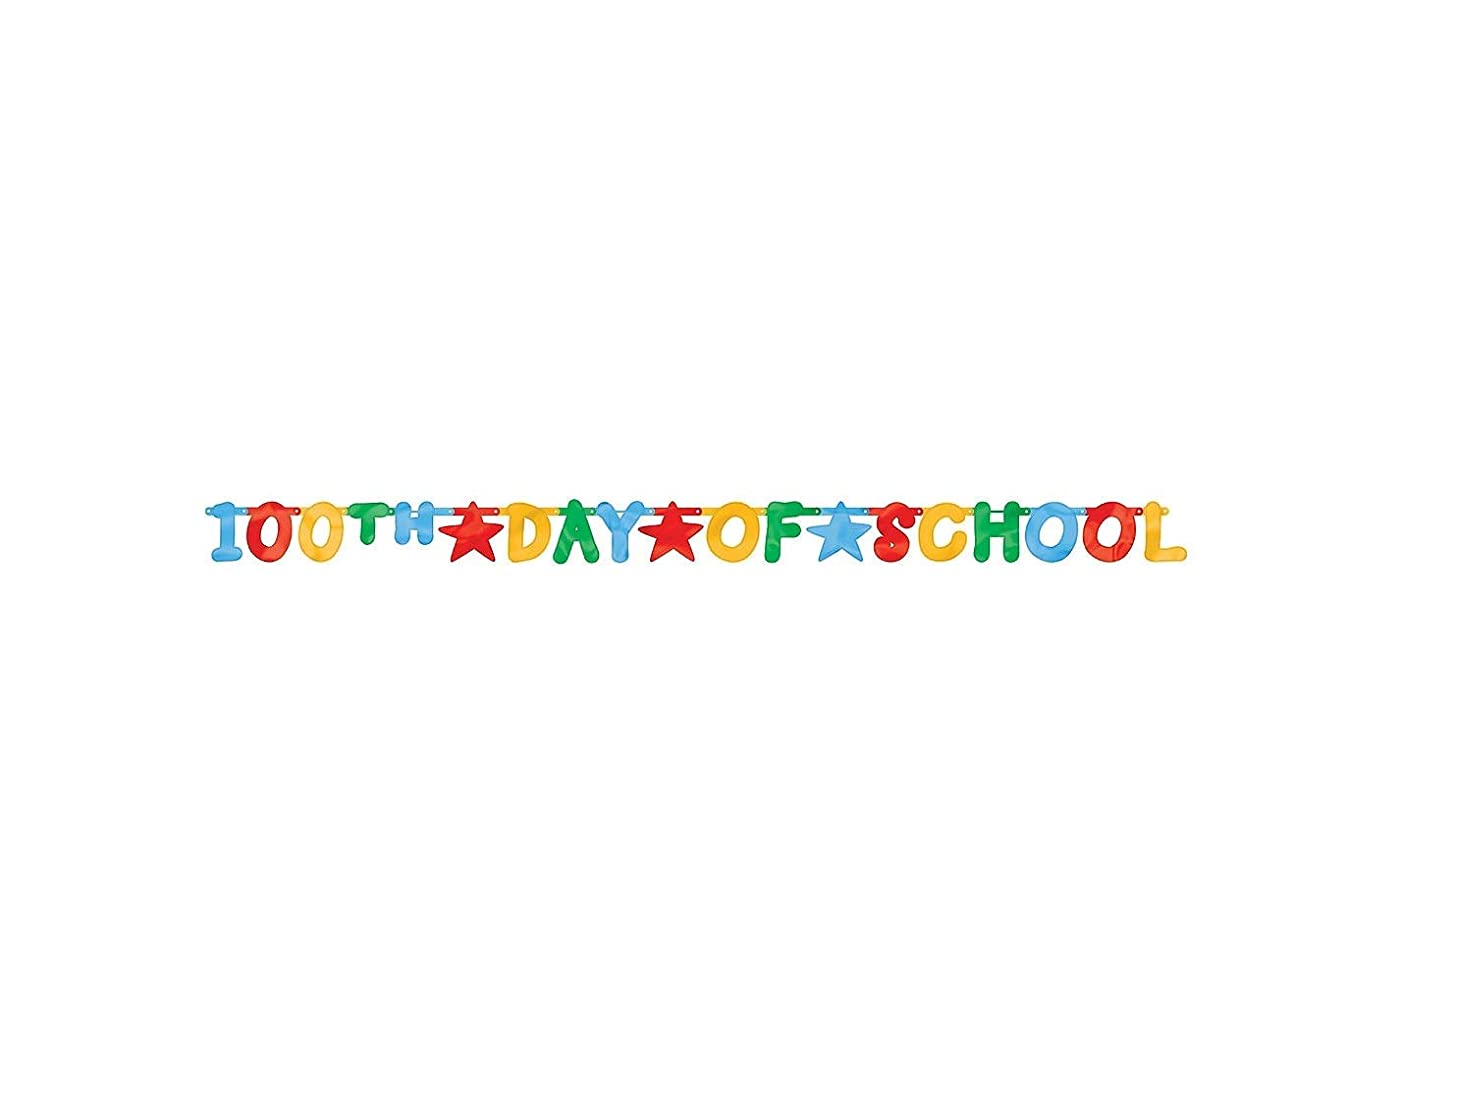 100th Day of School large foil letter banner